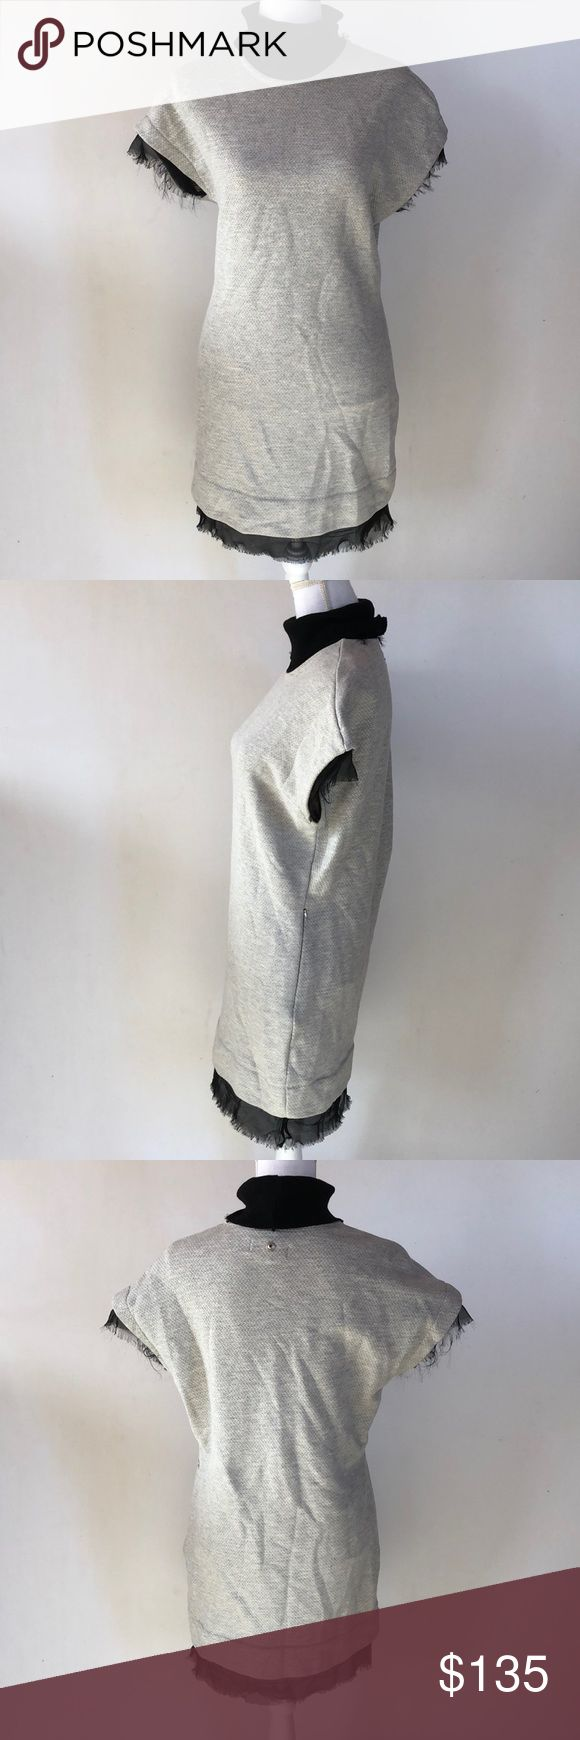 NWT Diesel D-ALMA-A Dress Grey, S This NWT Diesel D-ALMA-A Dress Grey, S is the perfect dress for those colder fall and winter days! Pair with black booties! EXCELLENT CONDITION NI DEFECTS Diesel Dresses Midi